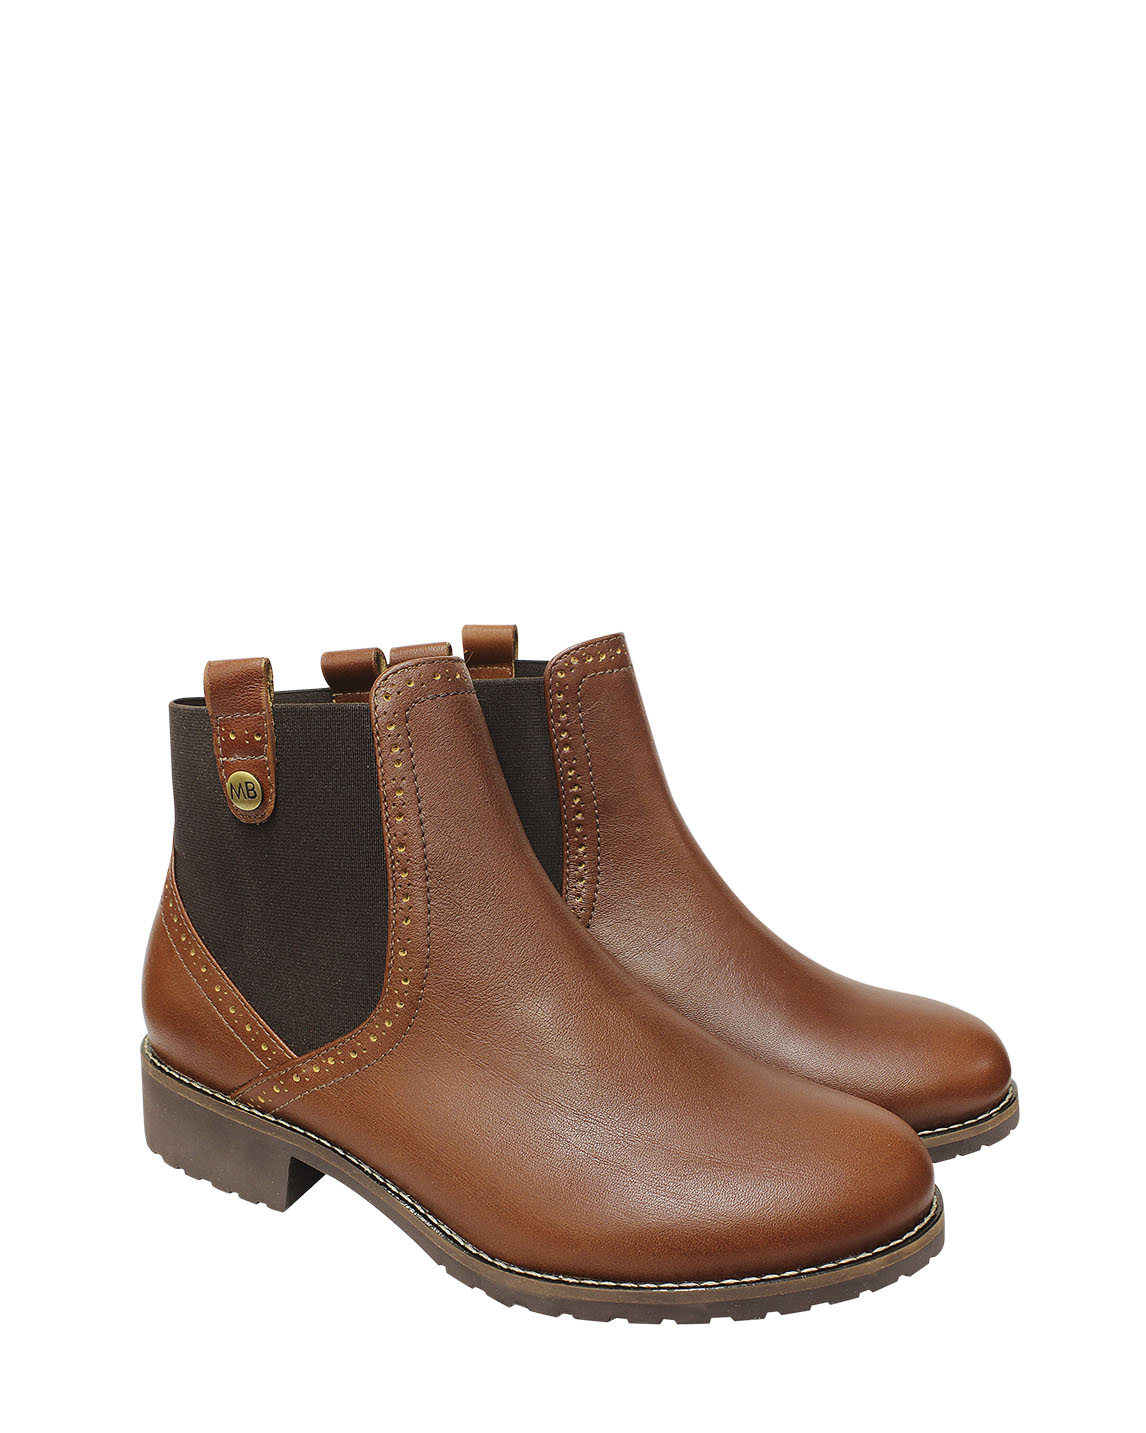 Calzado Botin FBU-7415 Color Natural